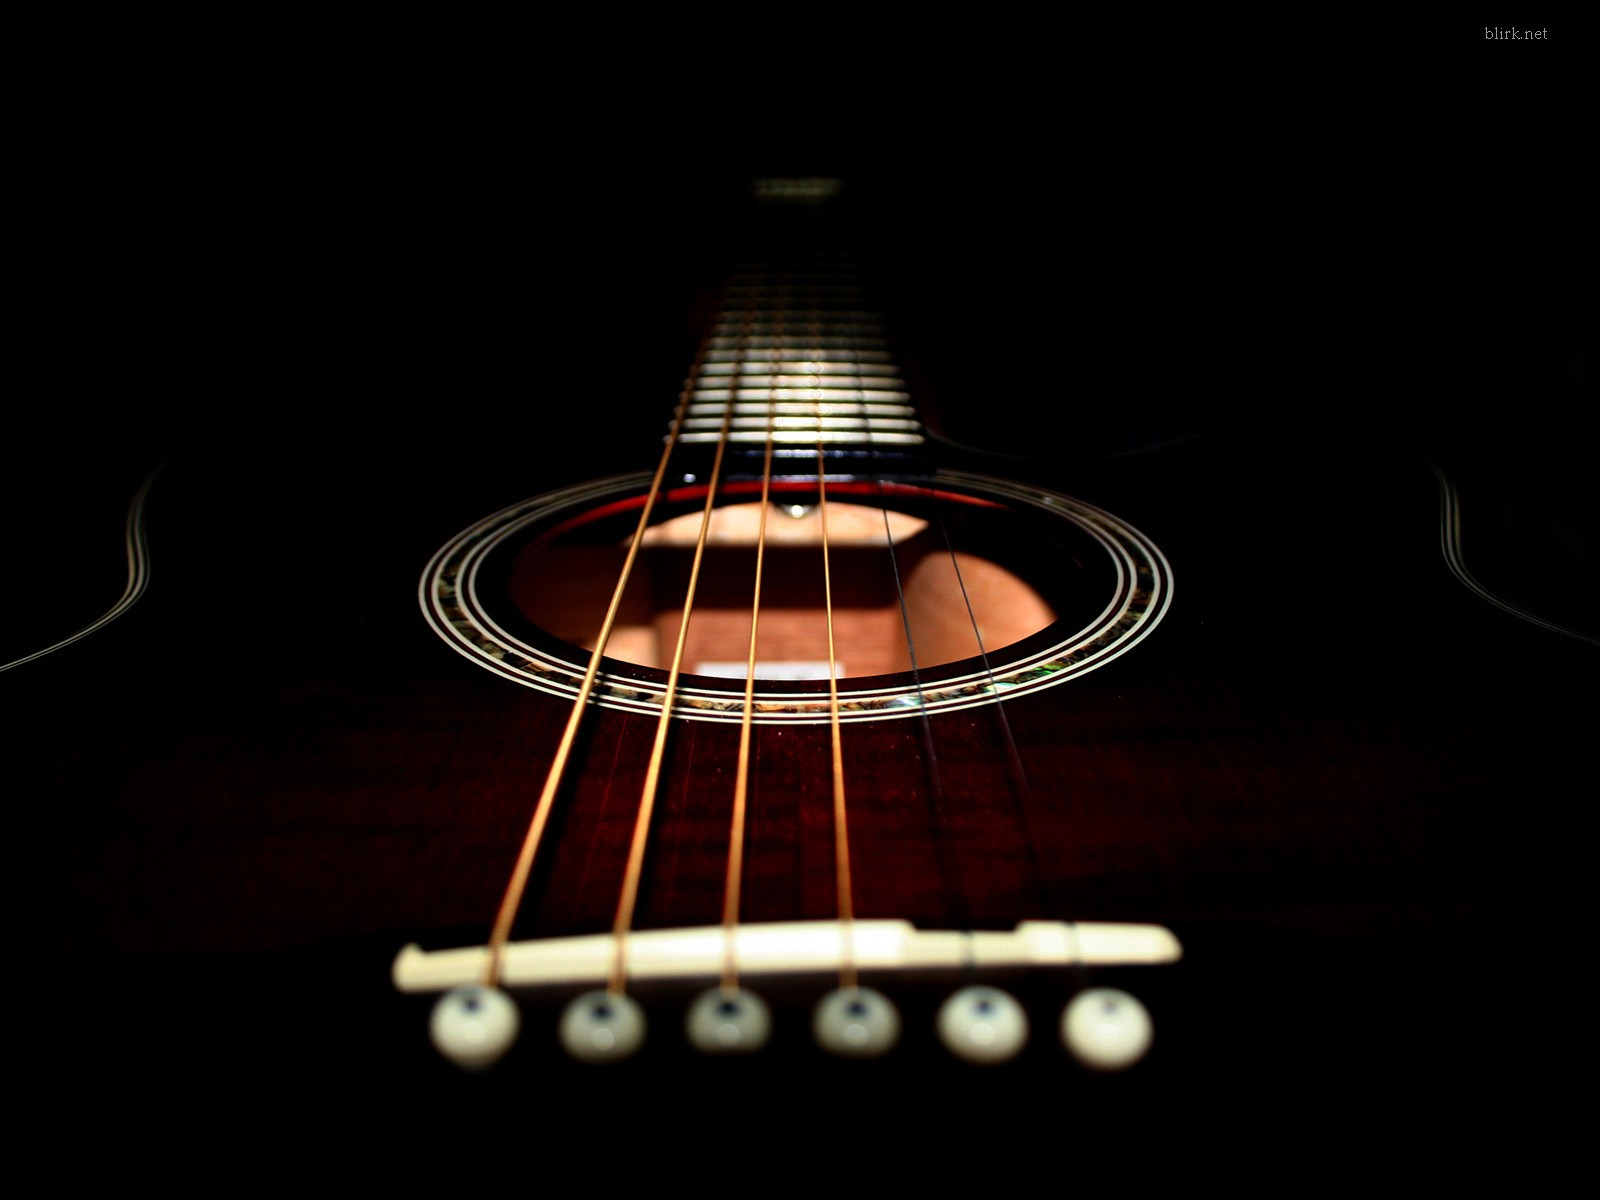 wallpapers-guitar22.jpg